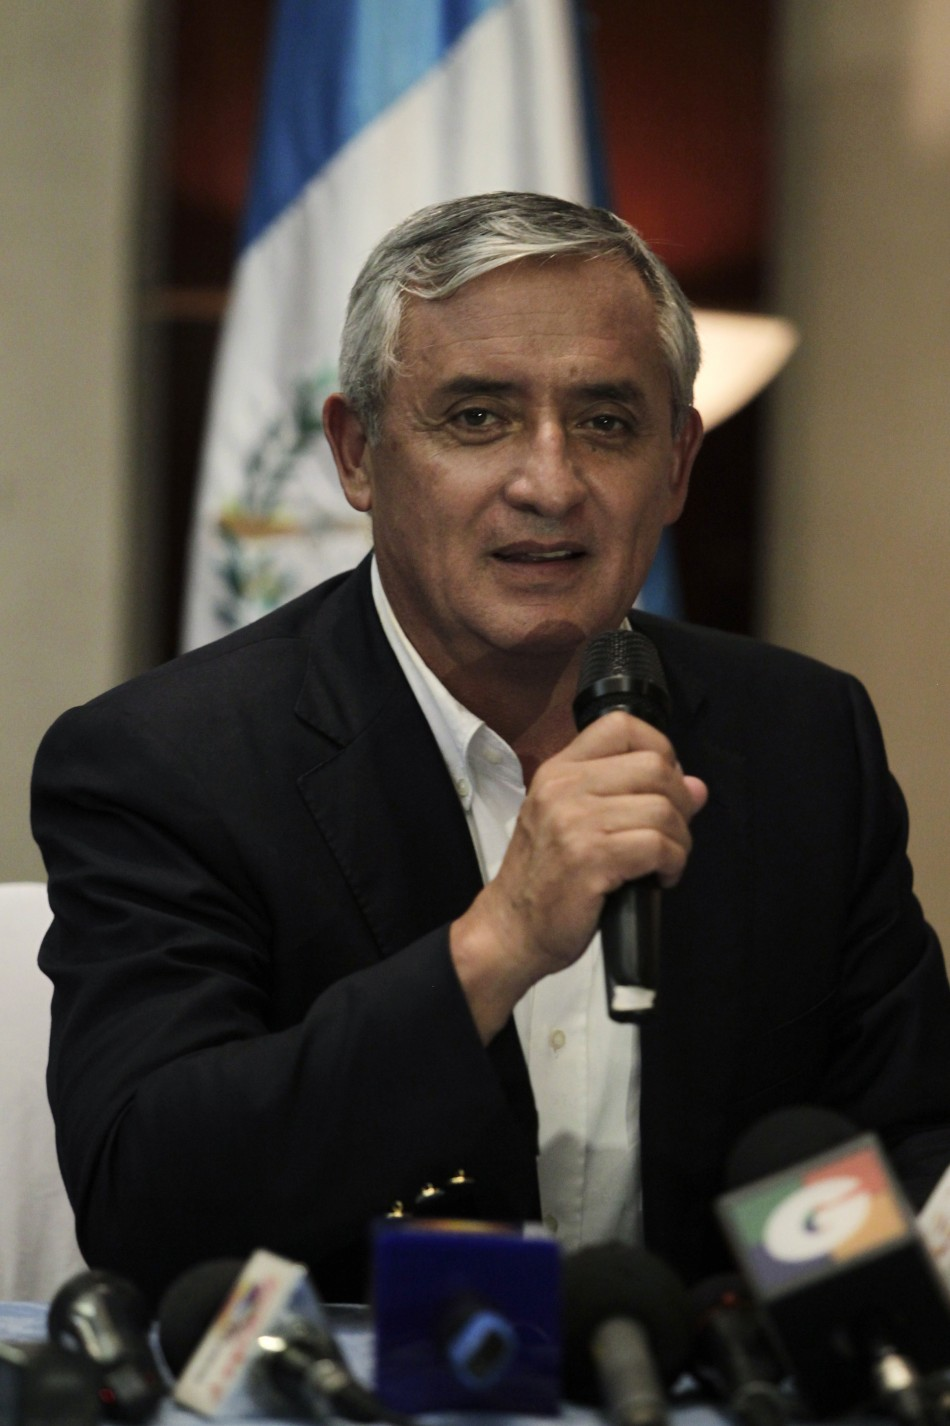 Retired general Otto Perez of the right-wing Patriot Party speaks in the media center of the Supreme Electoral Tribunal in Guatemala City